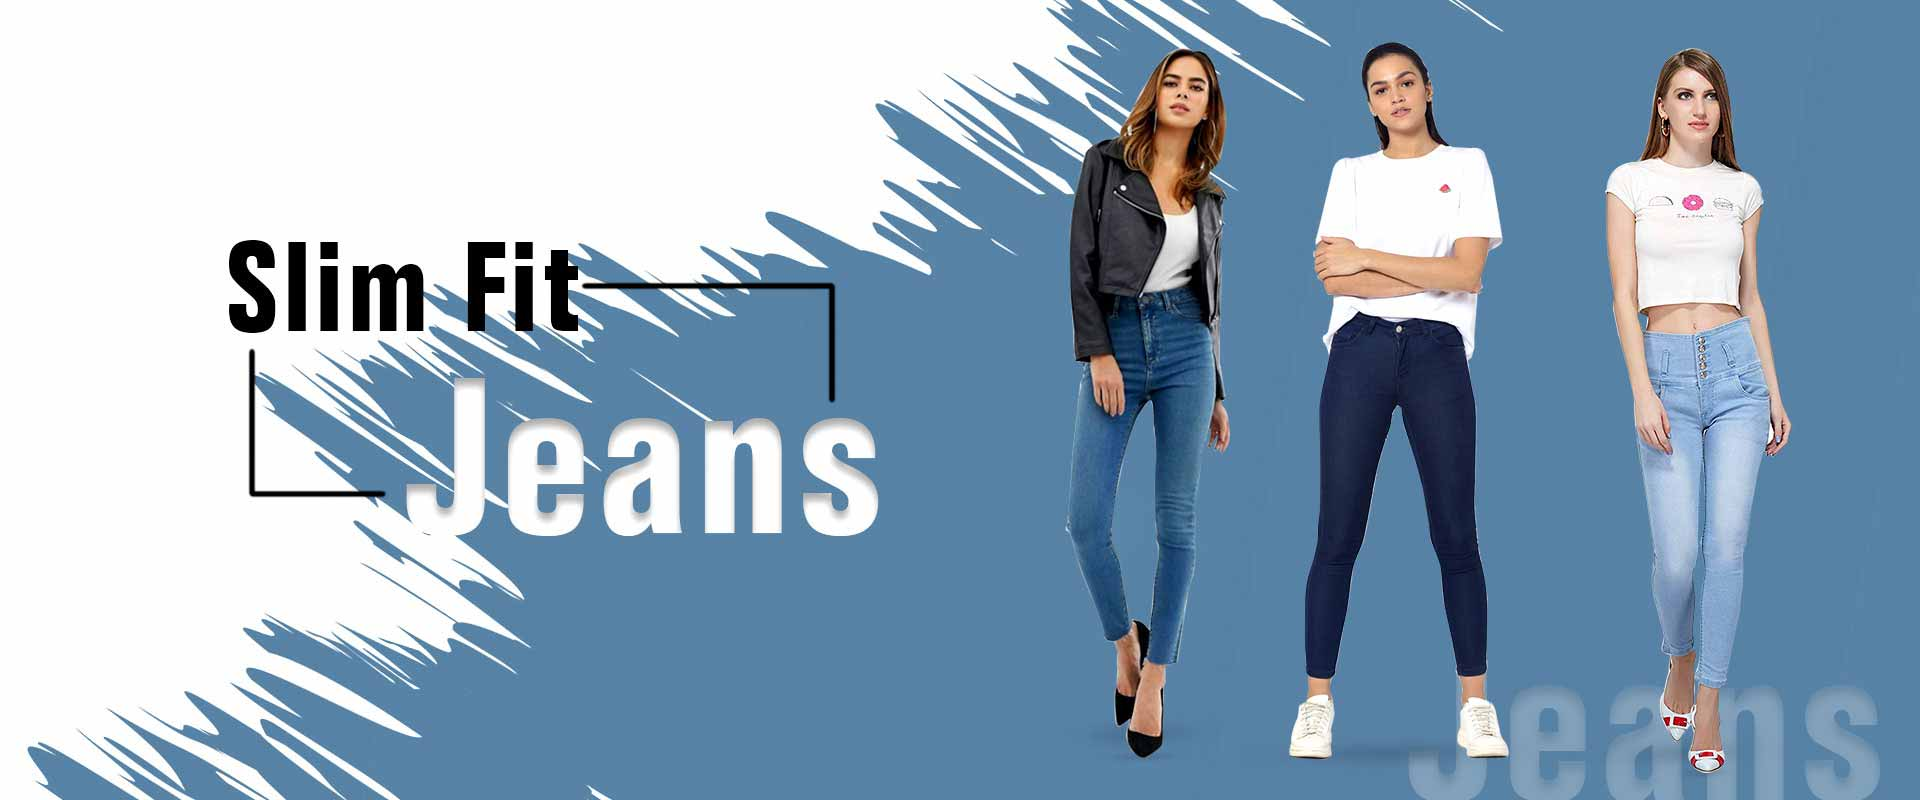 Slim Fit Jeans Manufacturers